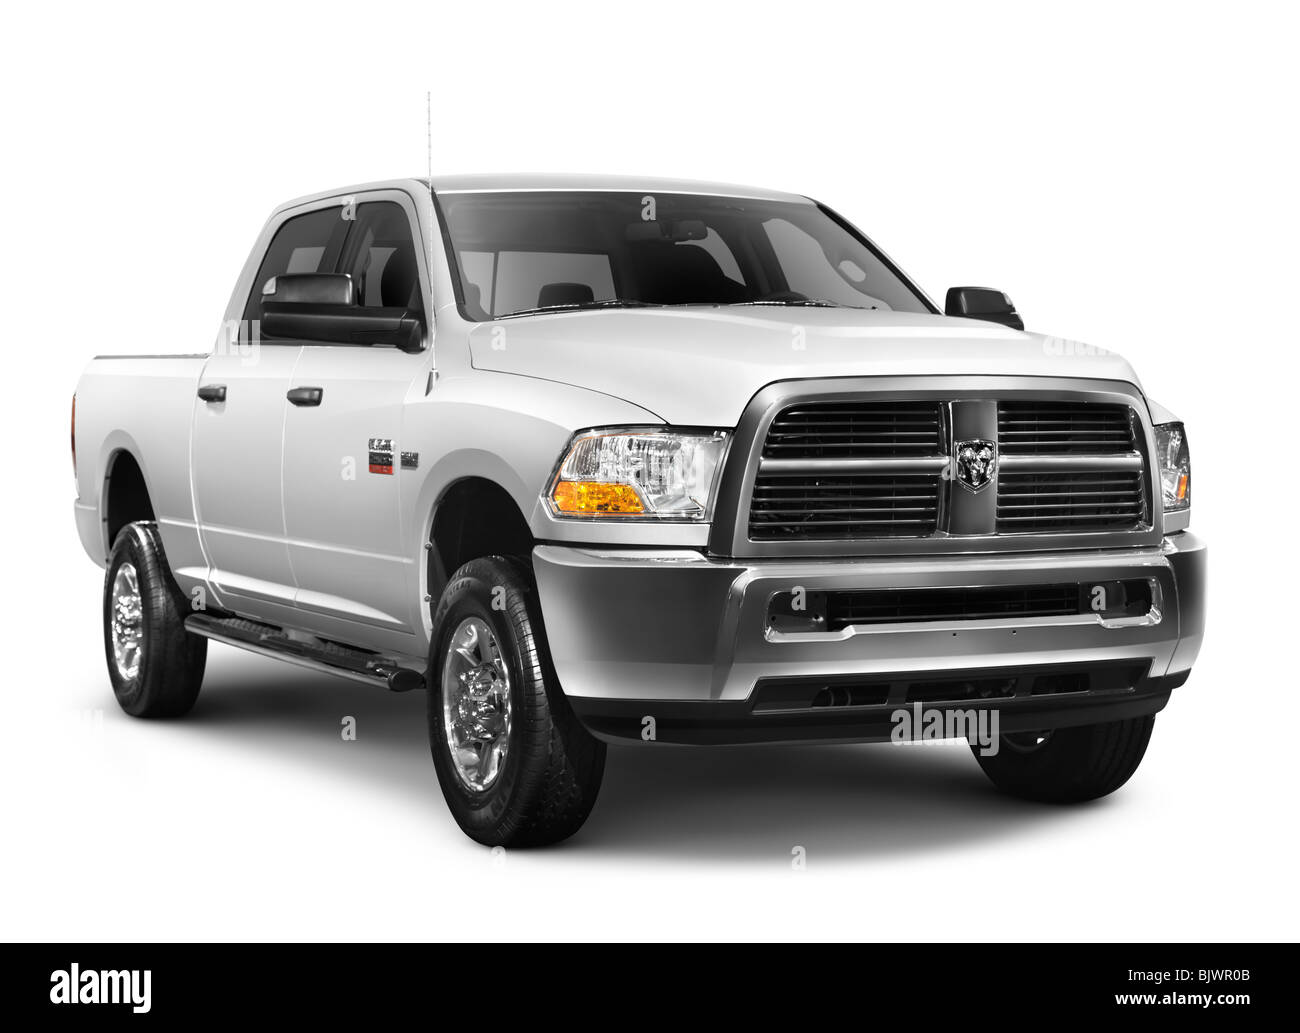 white 2010 dodge ram 2500 heavy duty pickup truck isolated on white background with clipping path - White Dodge Ram Truck